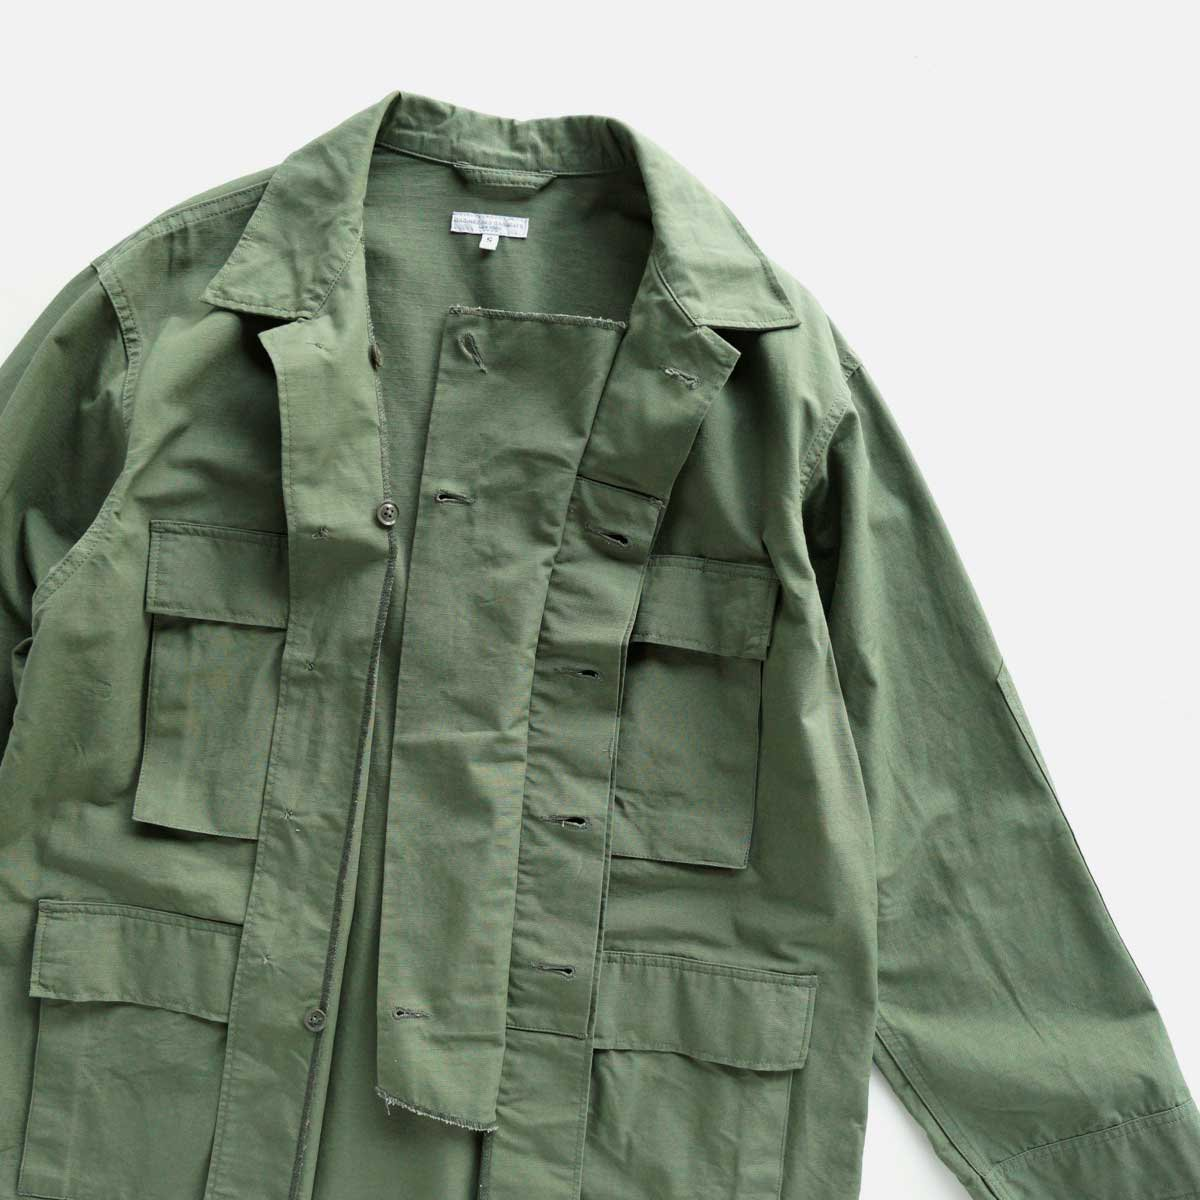 Engineered Garments  BDU JACKET - COTTON RIPSTOP (OLIVE)4